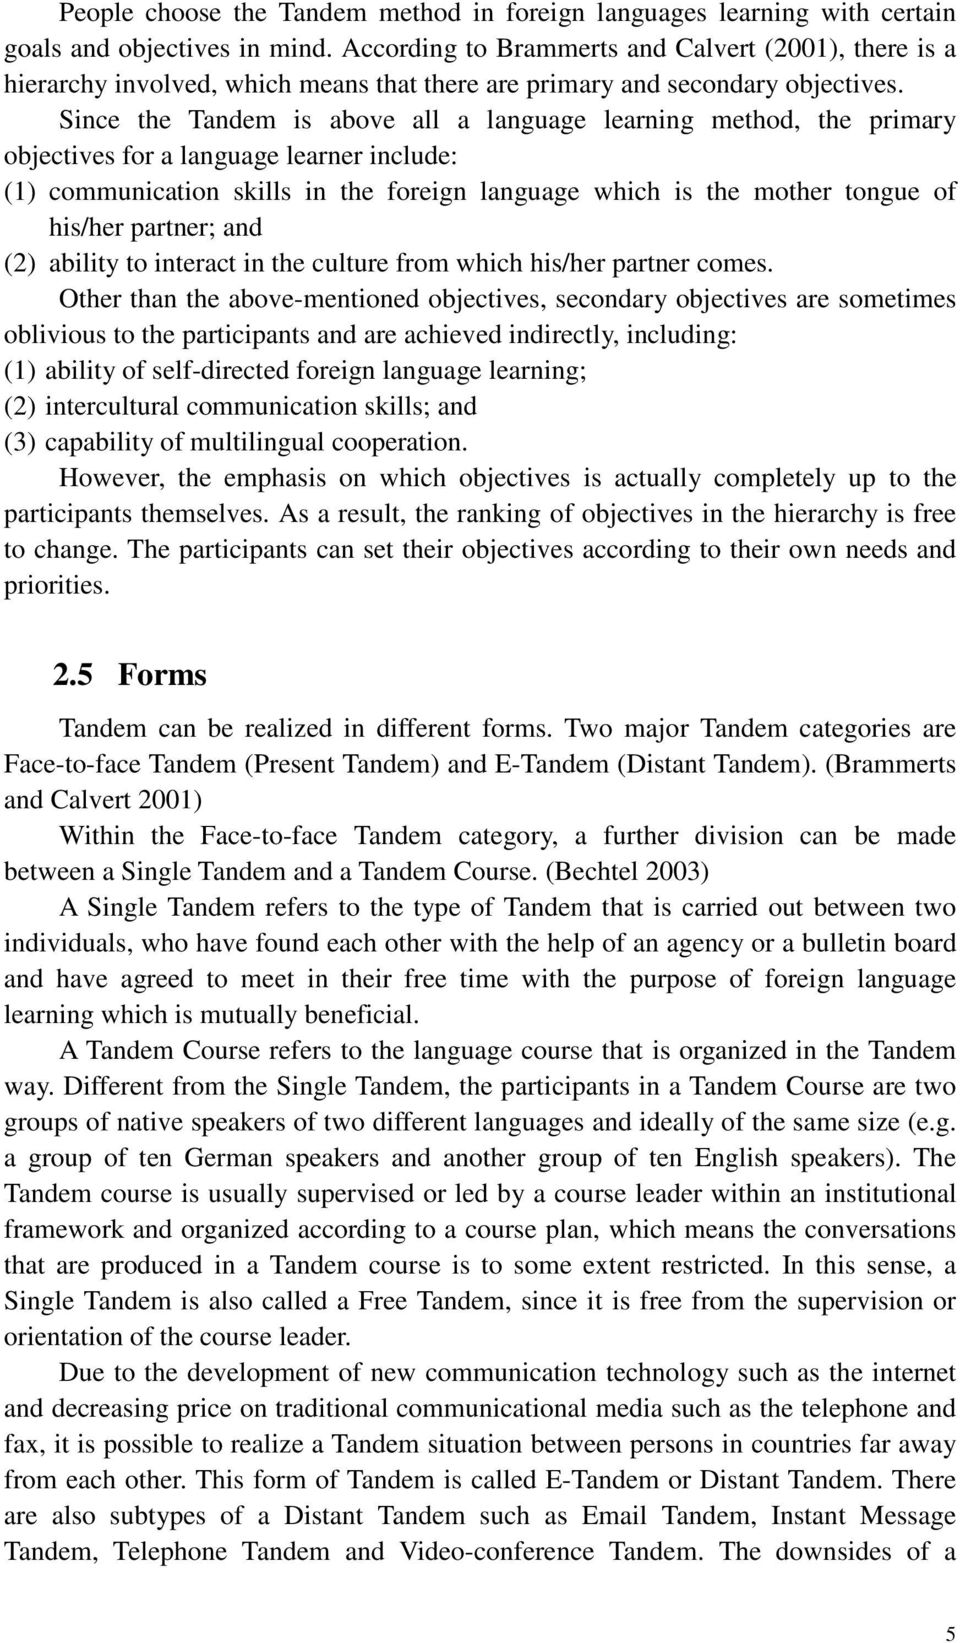 Since the Tandem is above all a language learning method, the primary objectives for a language learner include: (1) communication skills in the foreign language which is the mother tongue of his/her